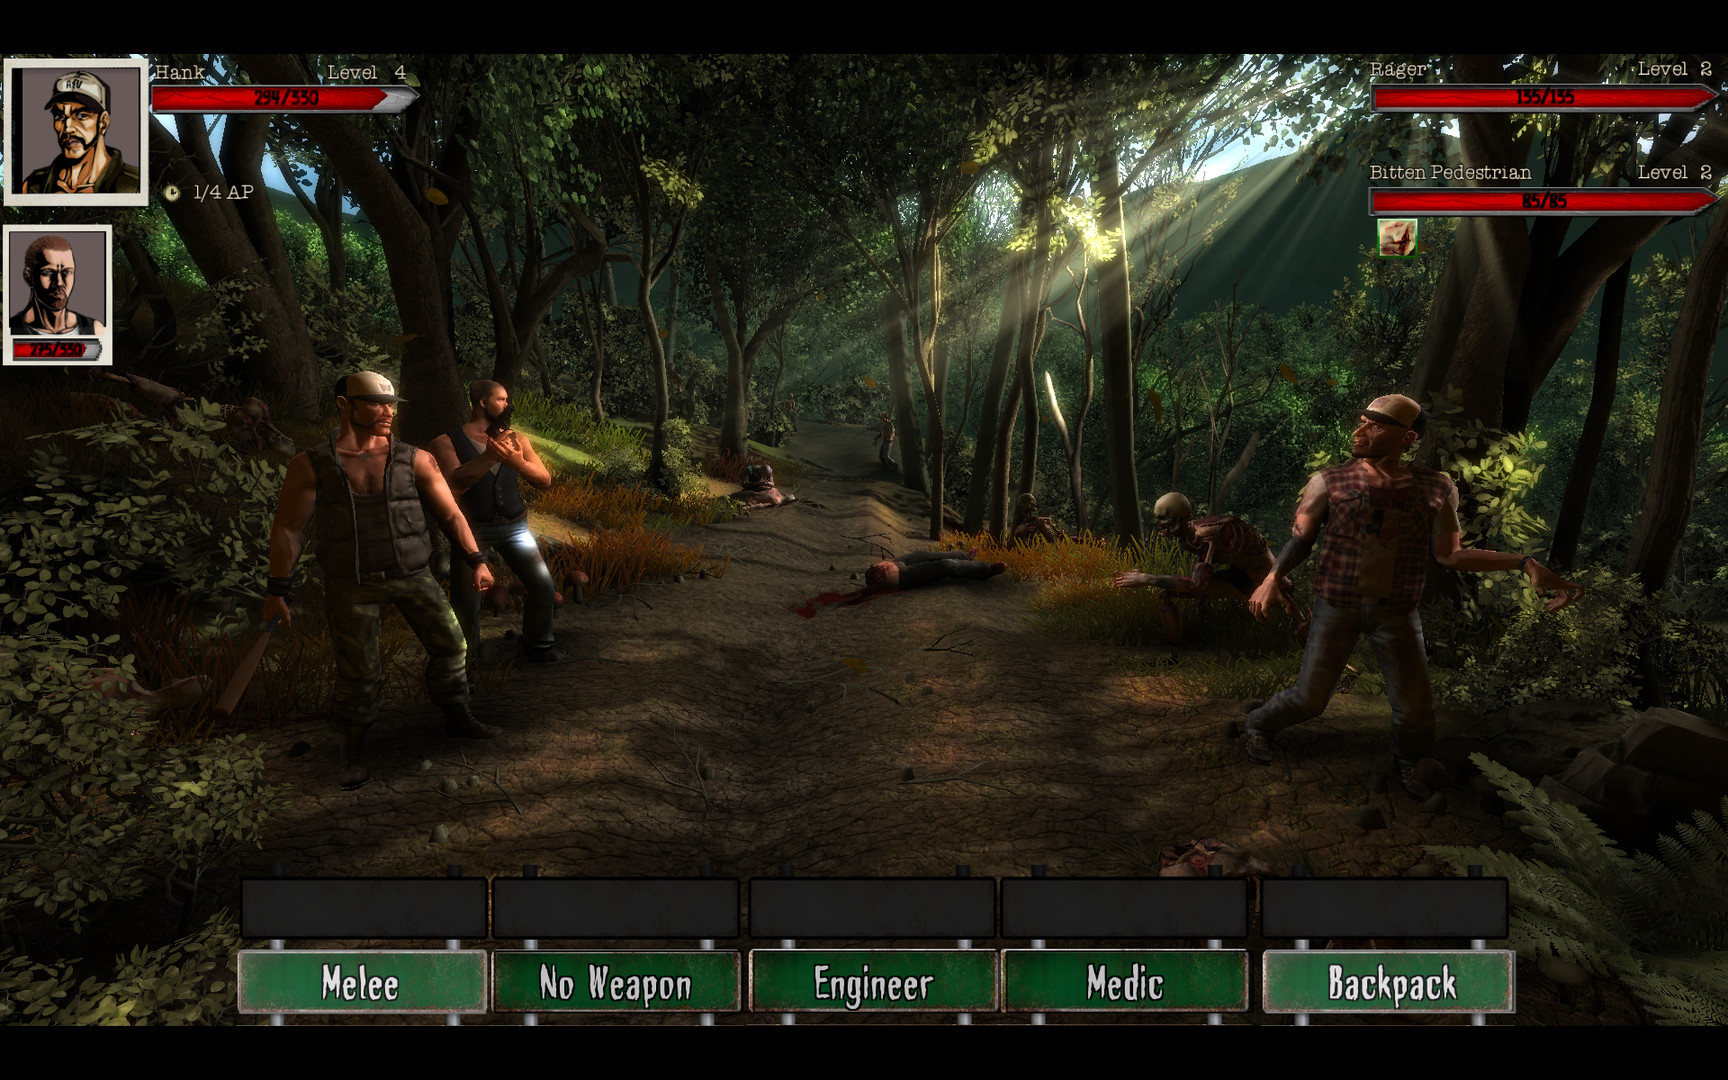 Action, adventure, casual, Dead Age, Dead Age Review, Headup Games, indie, Roguelike, Role Playing Game, RPG, Silent Dreams, simulation, strategy, survival, Turn-Based Combat, Xbox One, Xbox One Review, Zombies